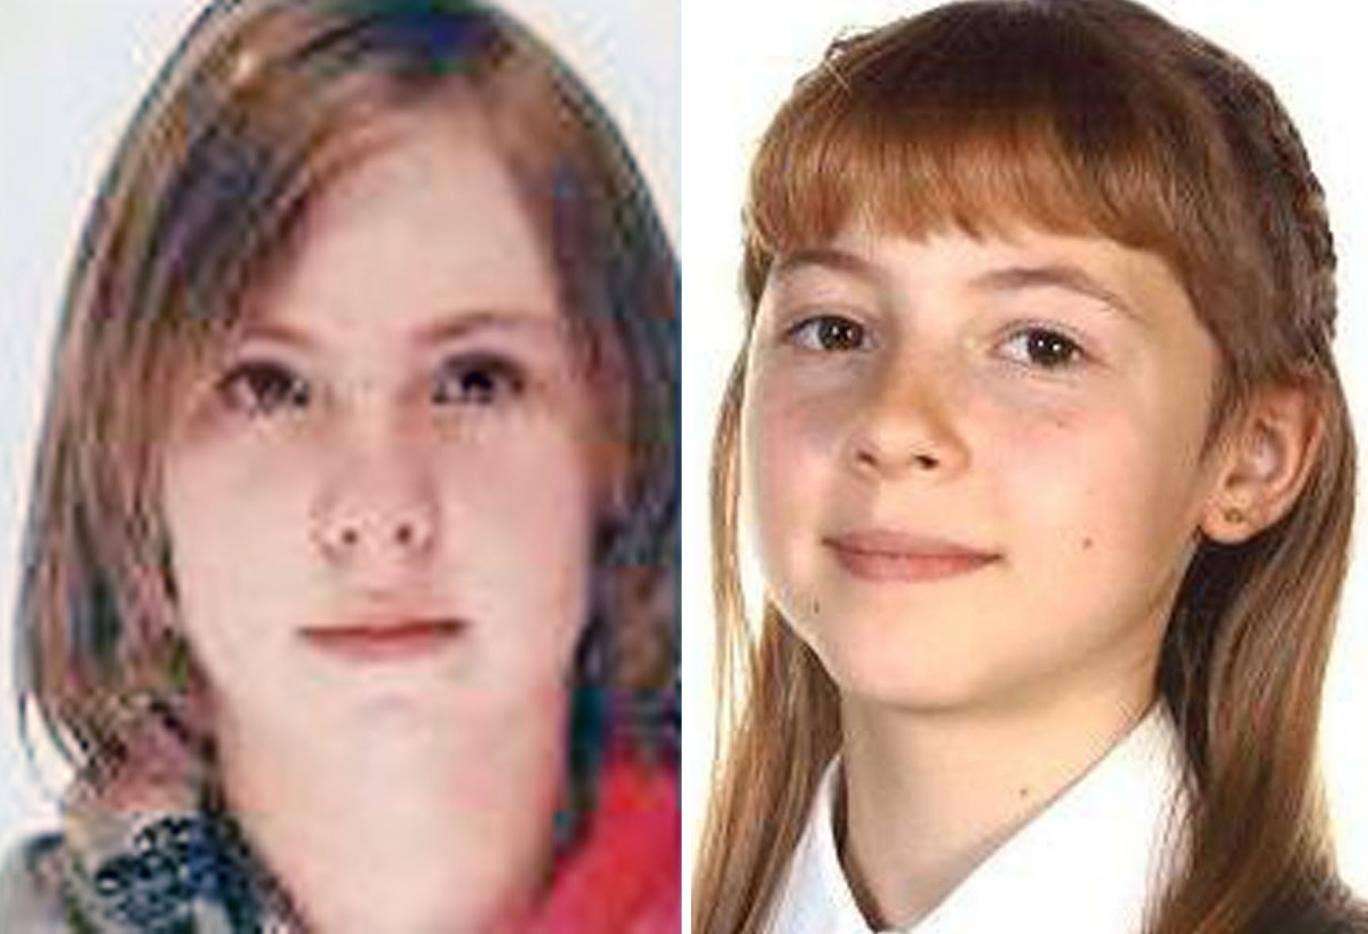 Police are searching for Wiktoria Popiel (left) and Vitalija Sidlauskaite (right) who were reported missing after a walk to a local bus stop in north London